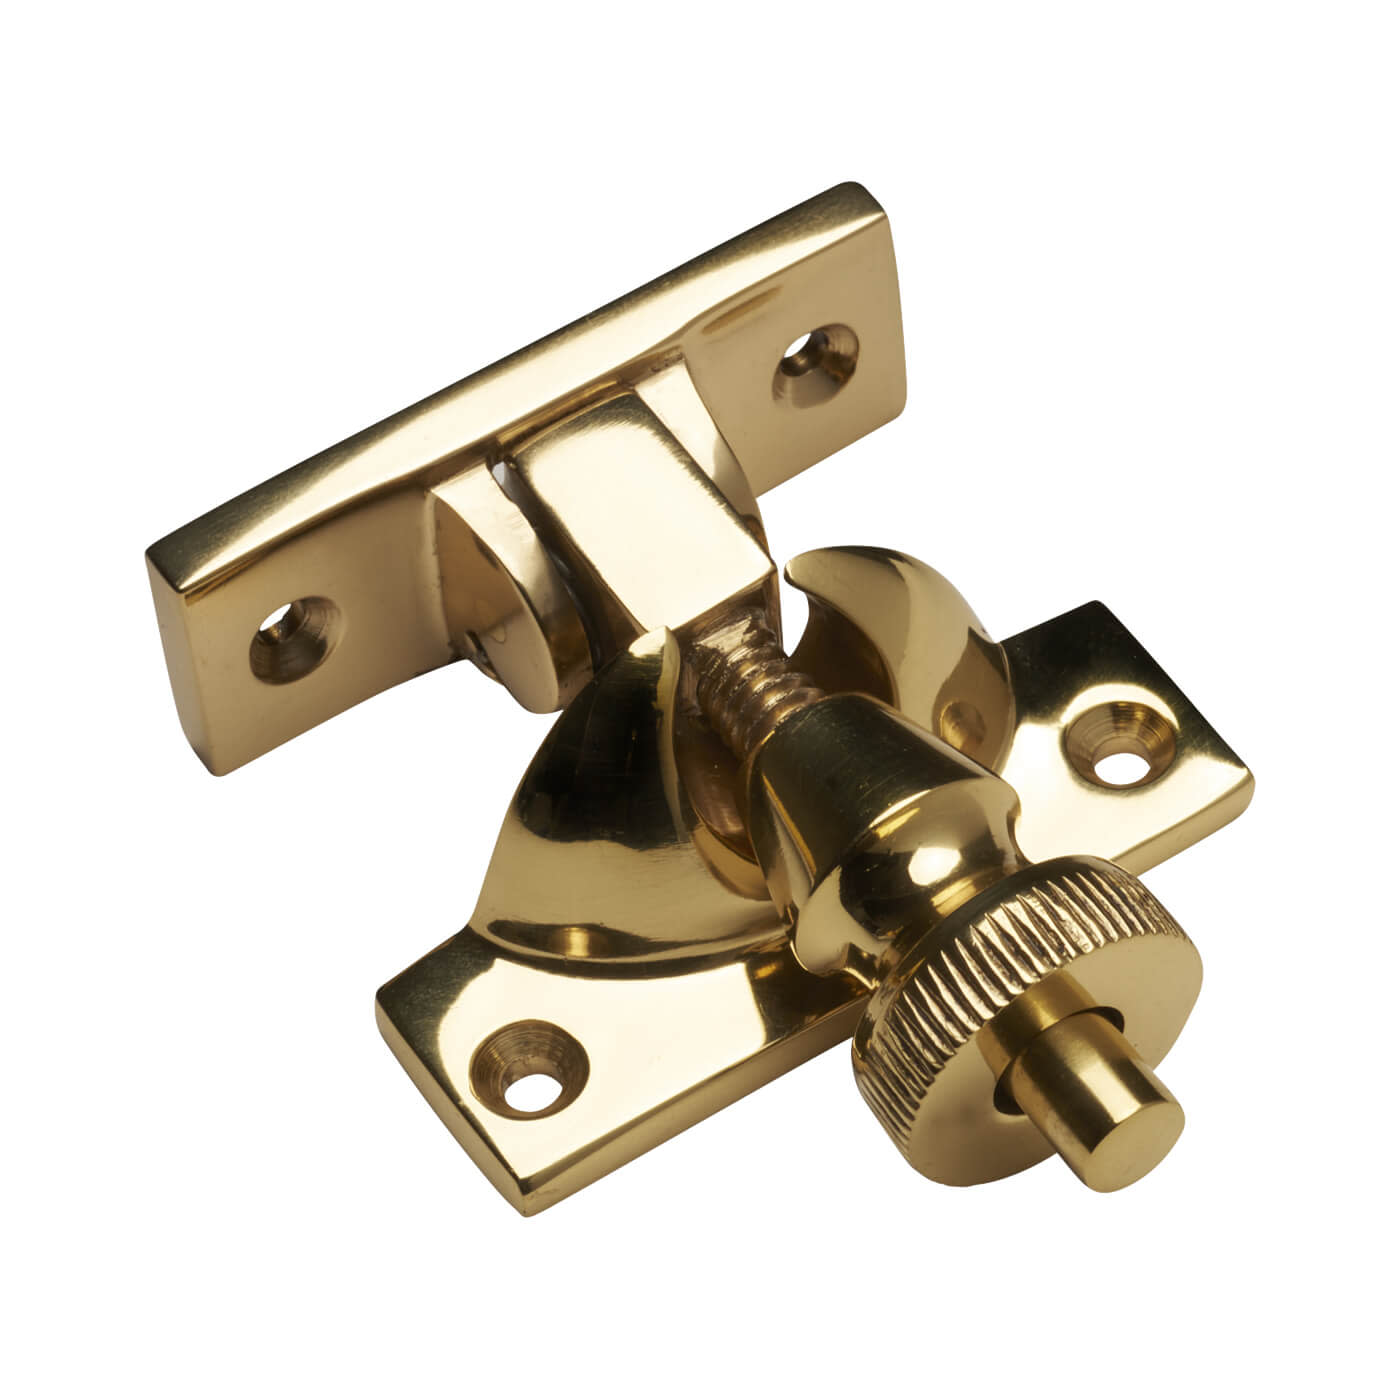 Brighton Screw Pattern Sash Fastener - 55mm - Polished Brass)